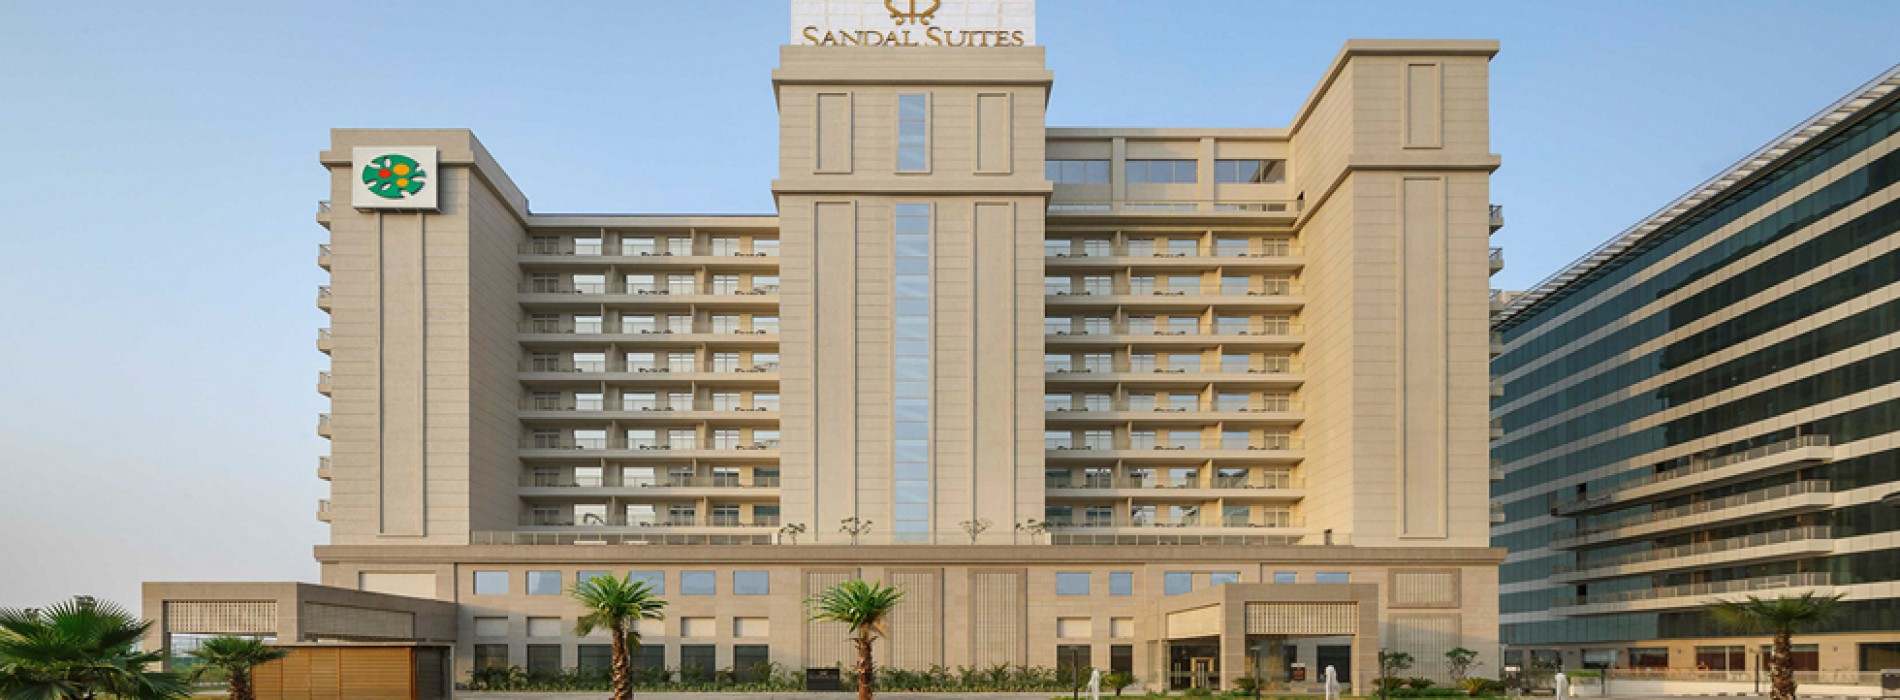 Sandal Suites, Noida's Ist Upscale Serviced Suites, now open